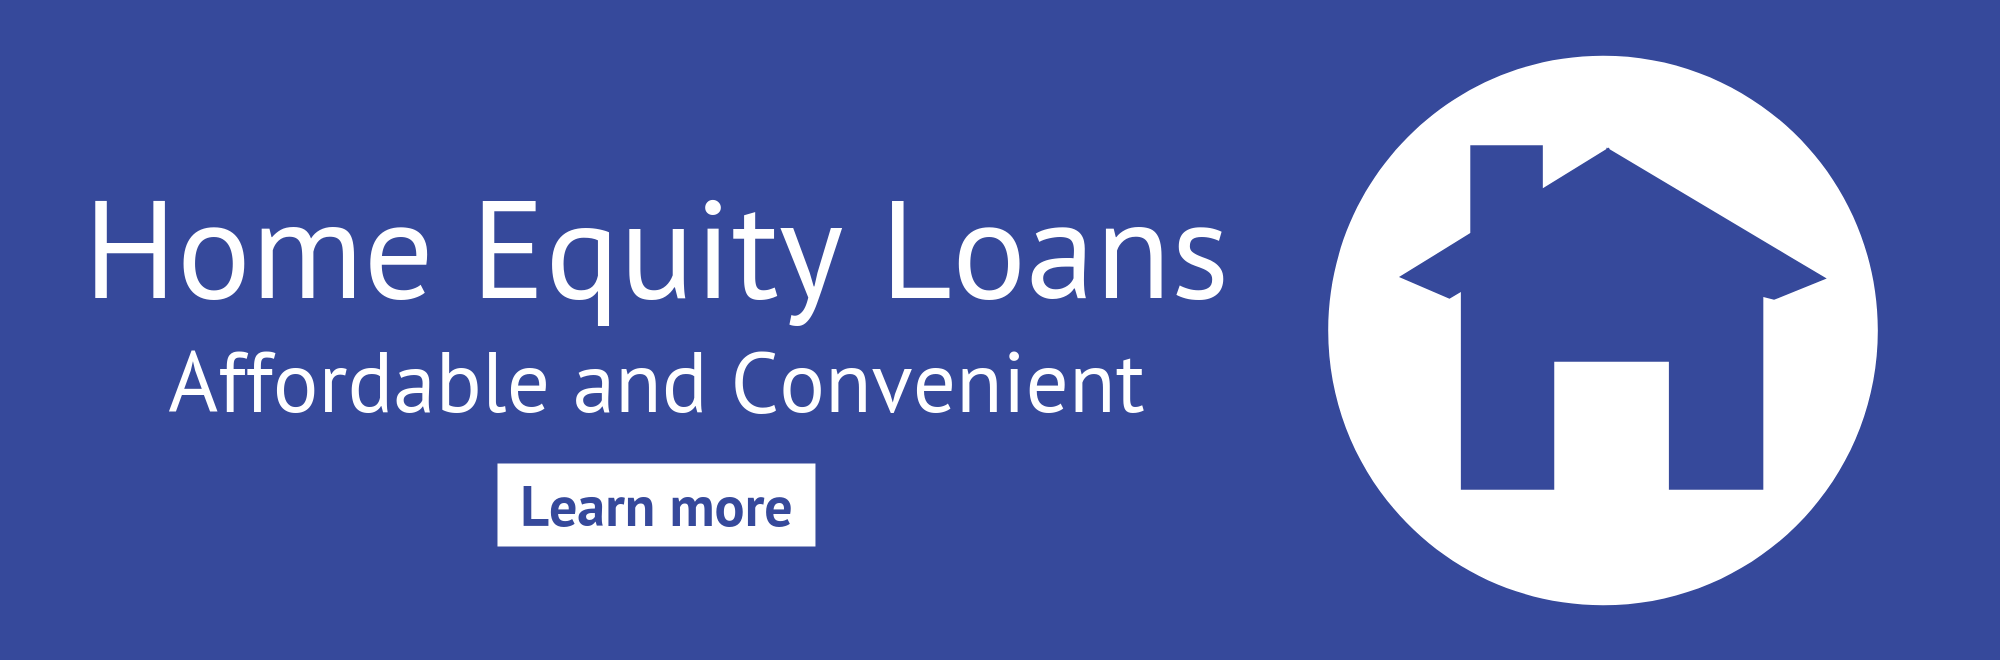 Learn more about our affordable and convenient home equity loans